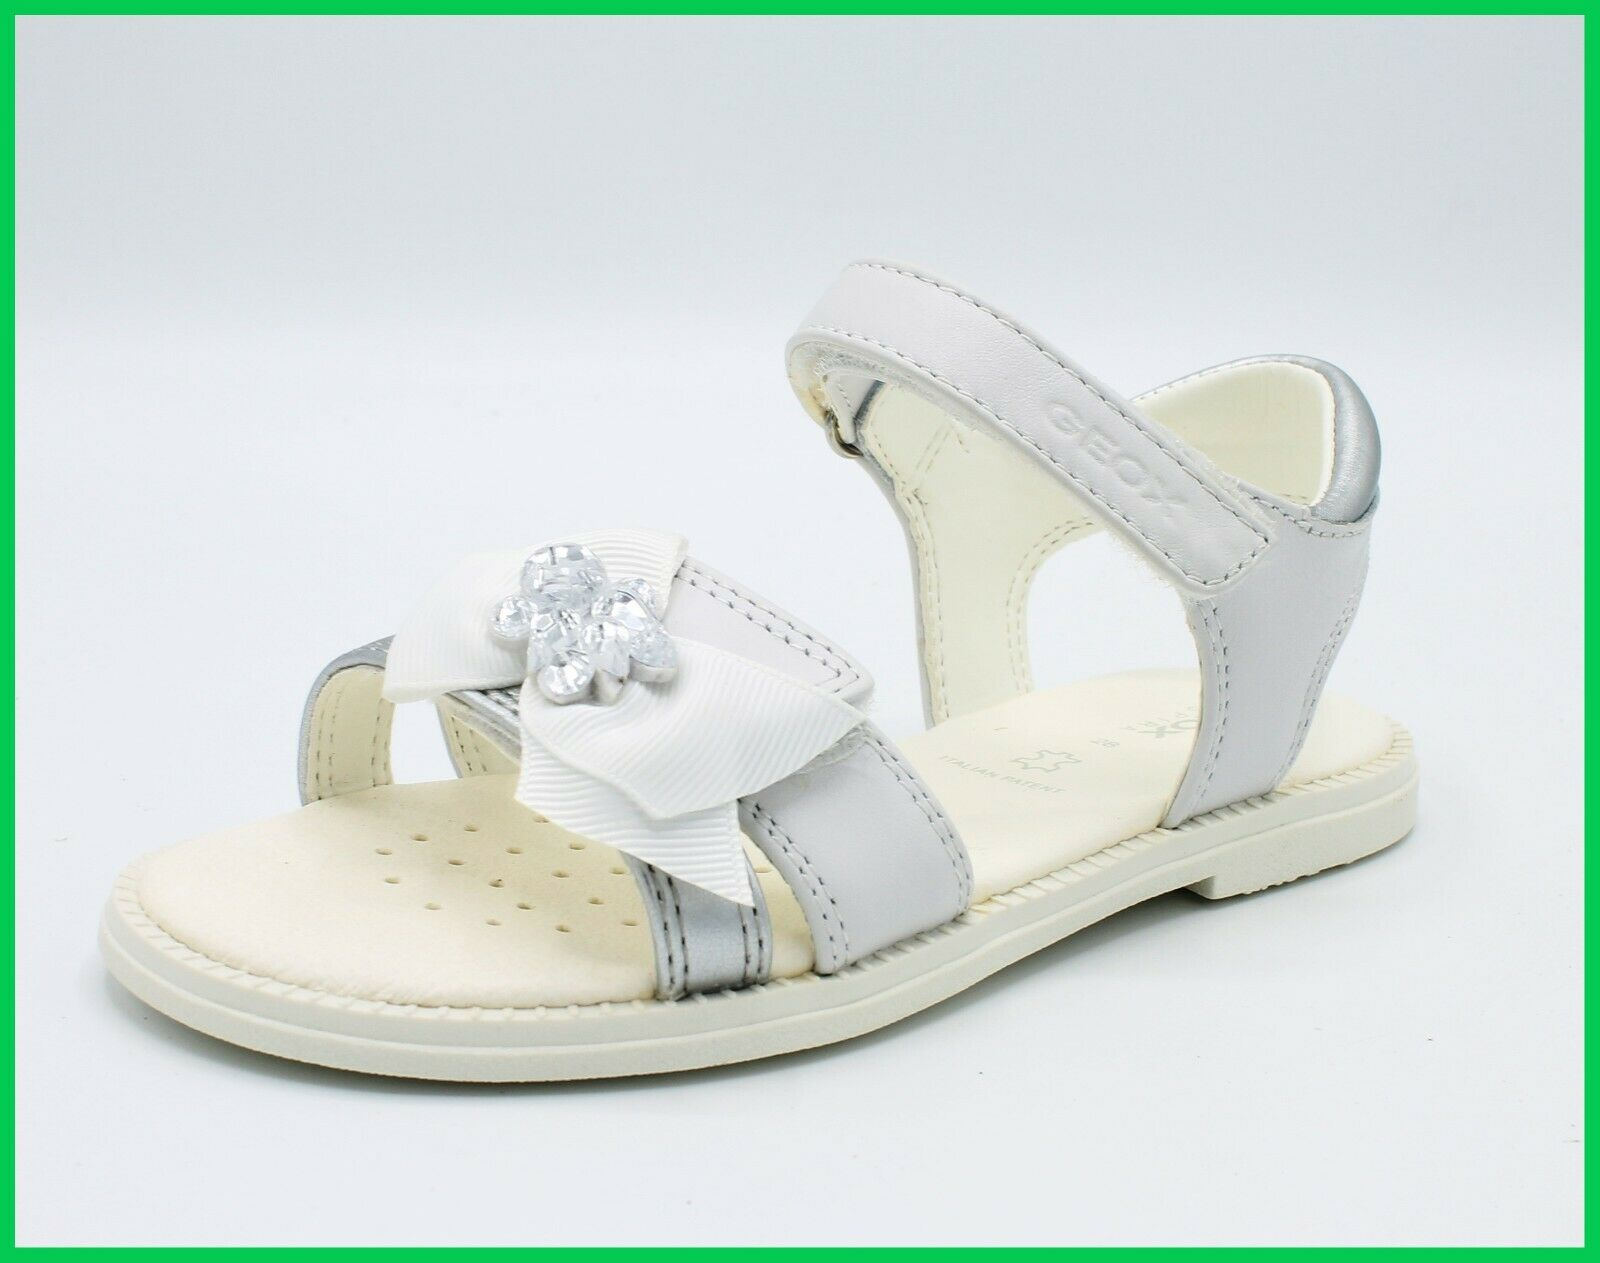 Geox Sandals Baby Leather Shoes for Ceremony Elegant Holy Communion Sandal